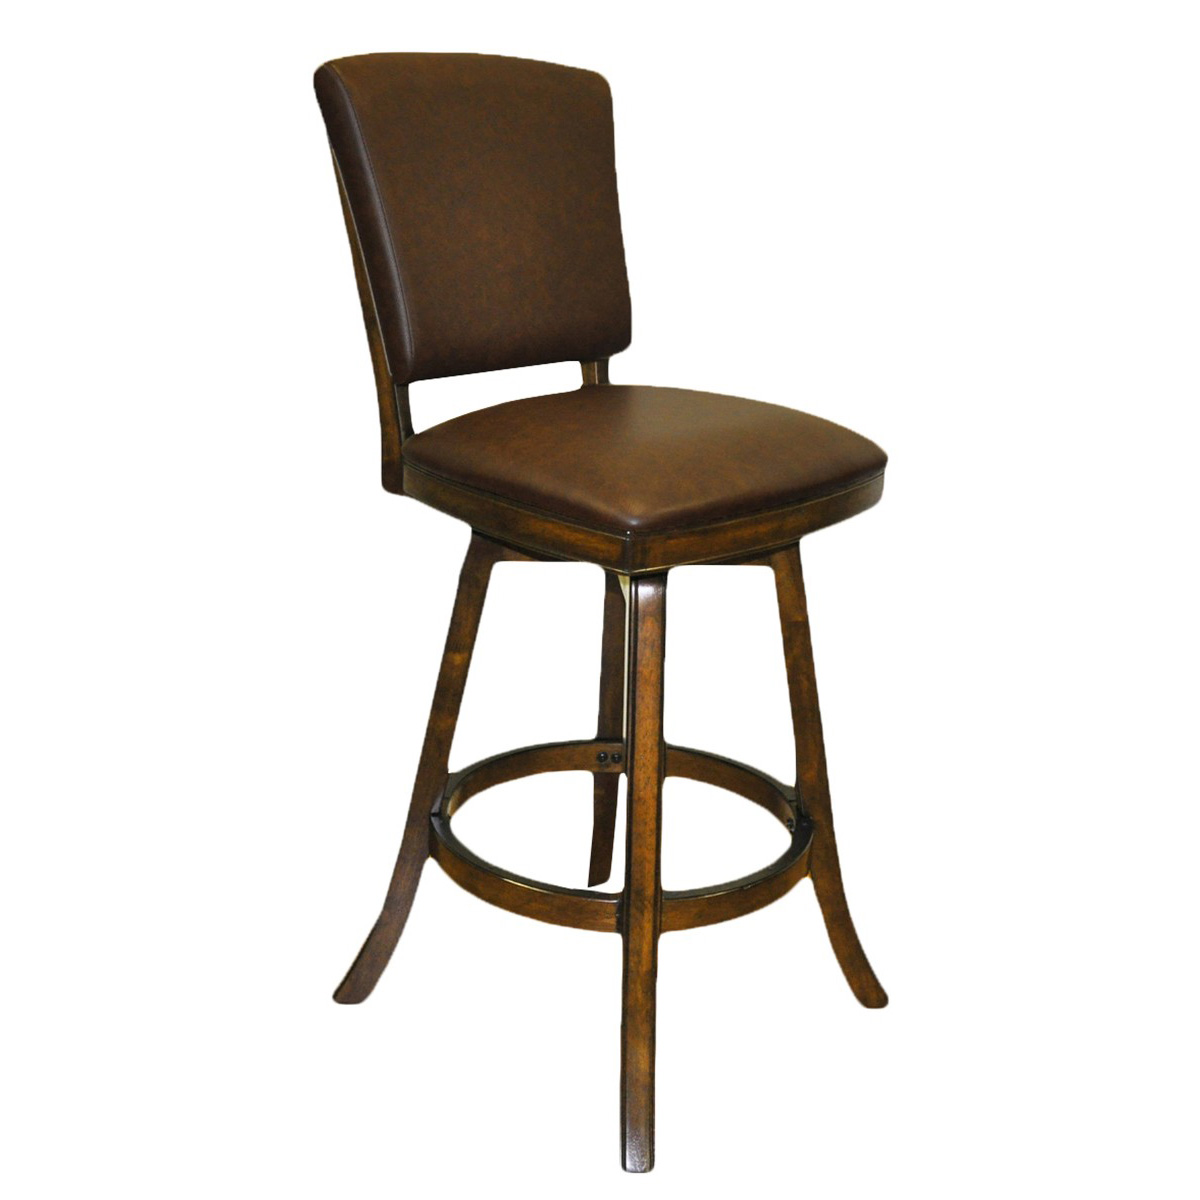 bar stool with back hollywood billiards. Black Bedroom Furniture Sets. Home Design Ideas